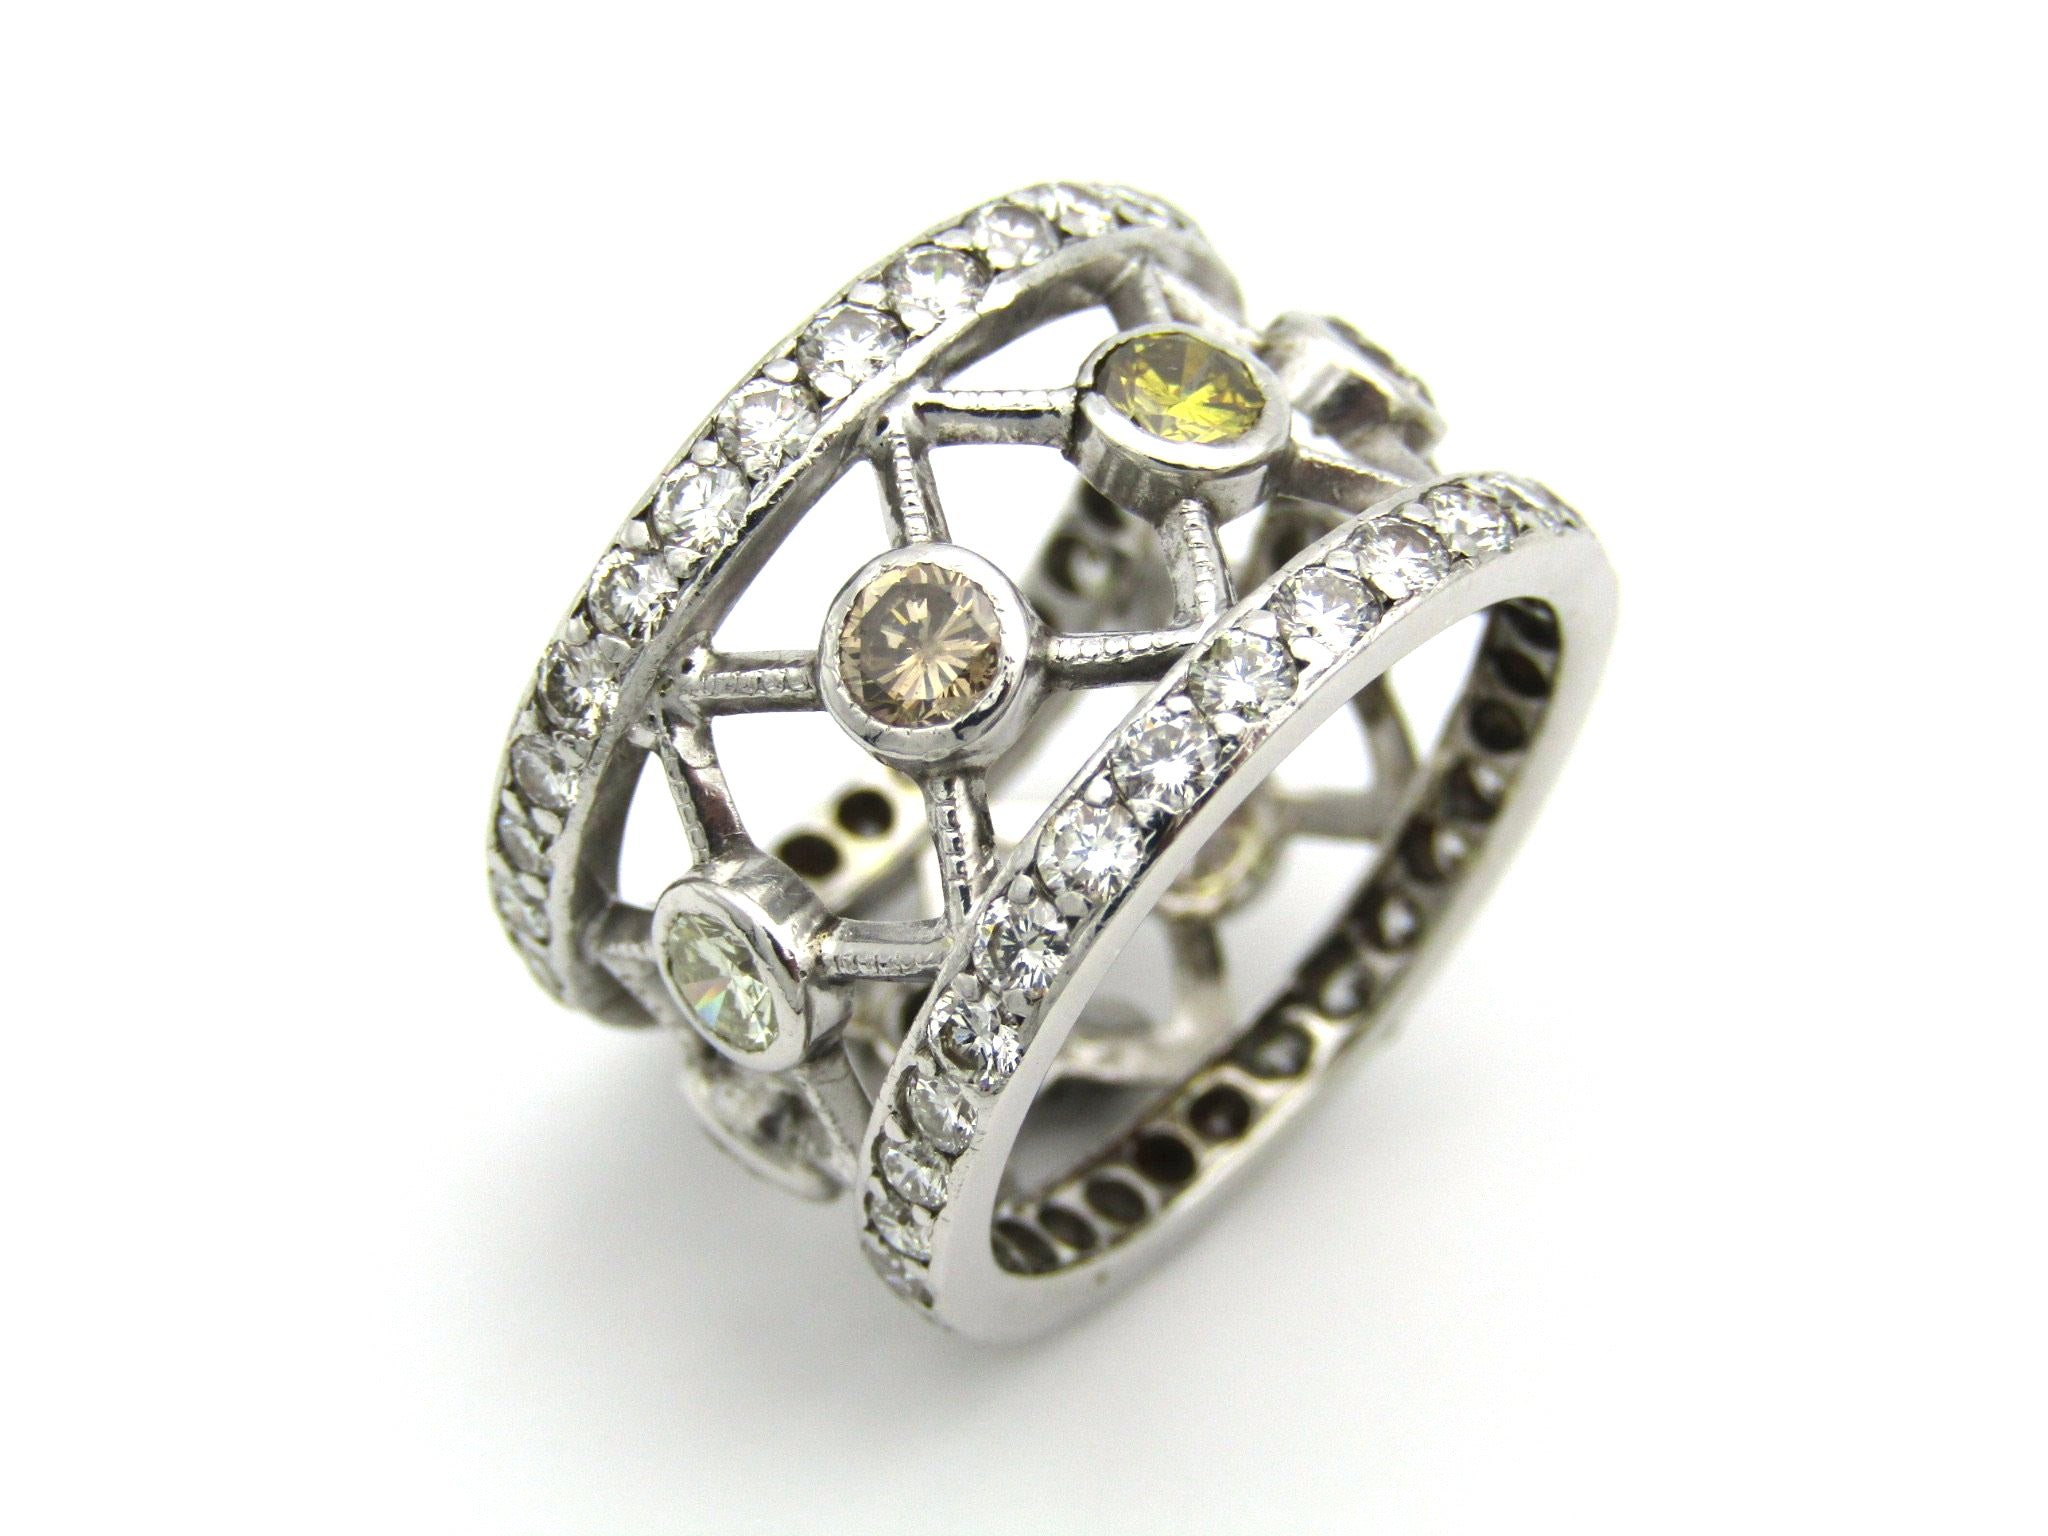 9kt gold fancy and colourless diamond ring.